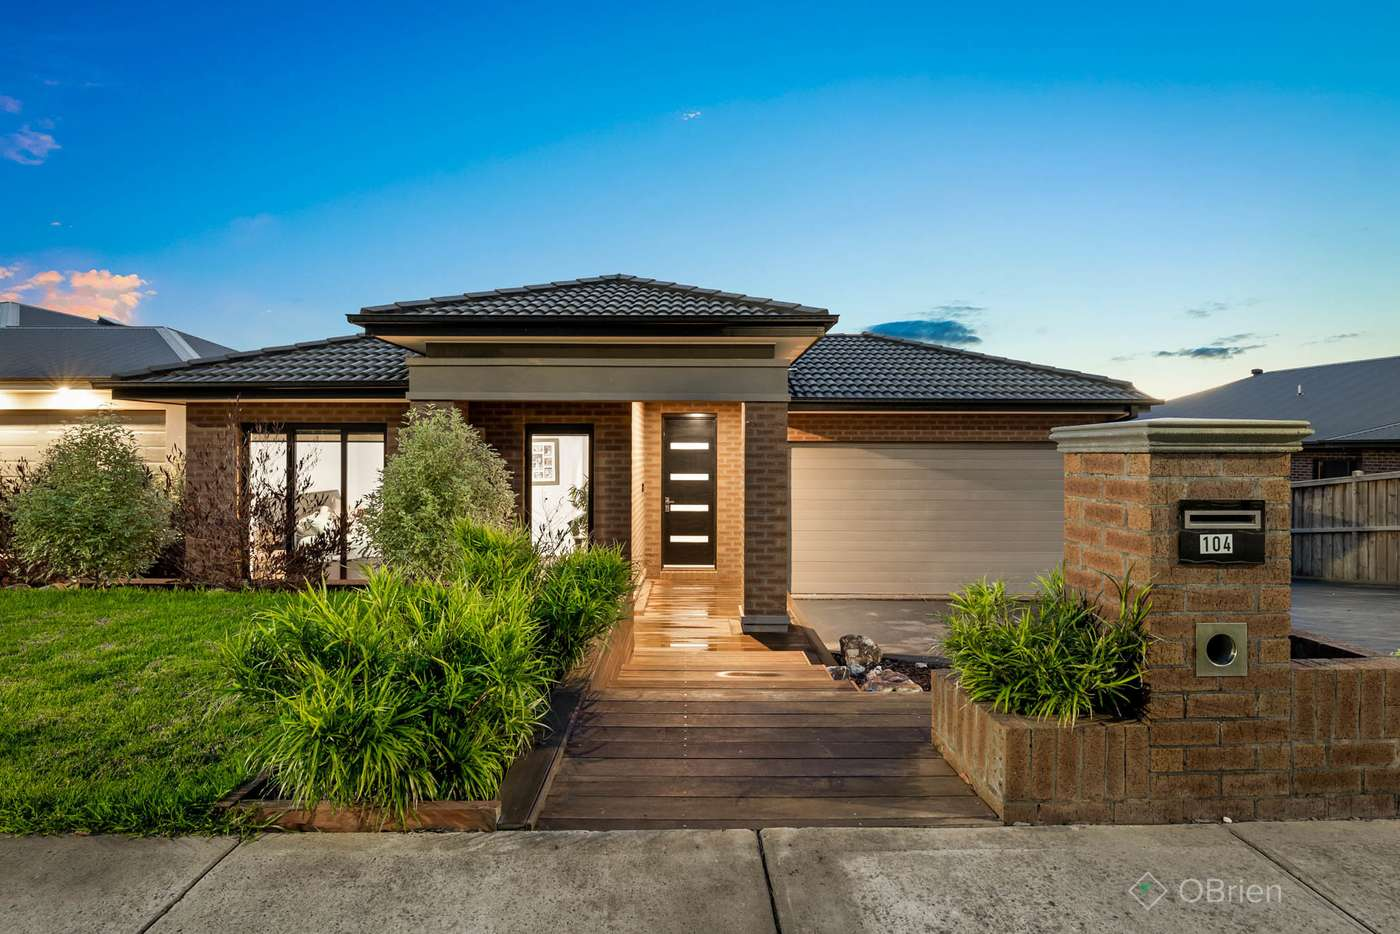 Main view of Homely house listing, 104 Jackson Drive, Drouin VIC 3818